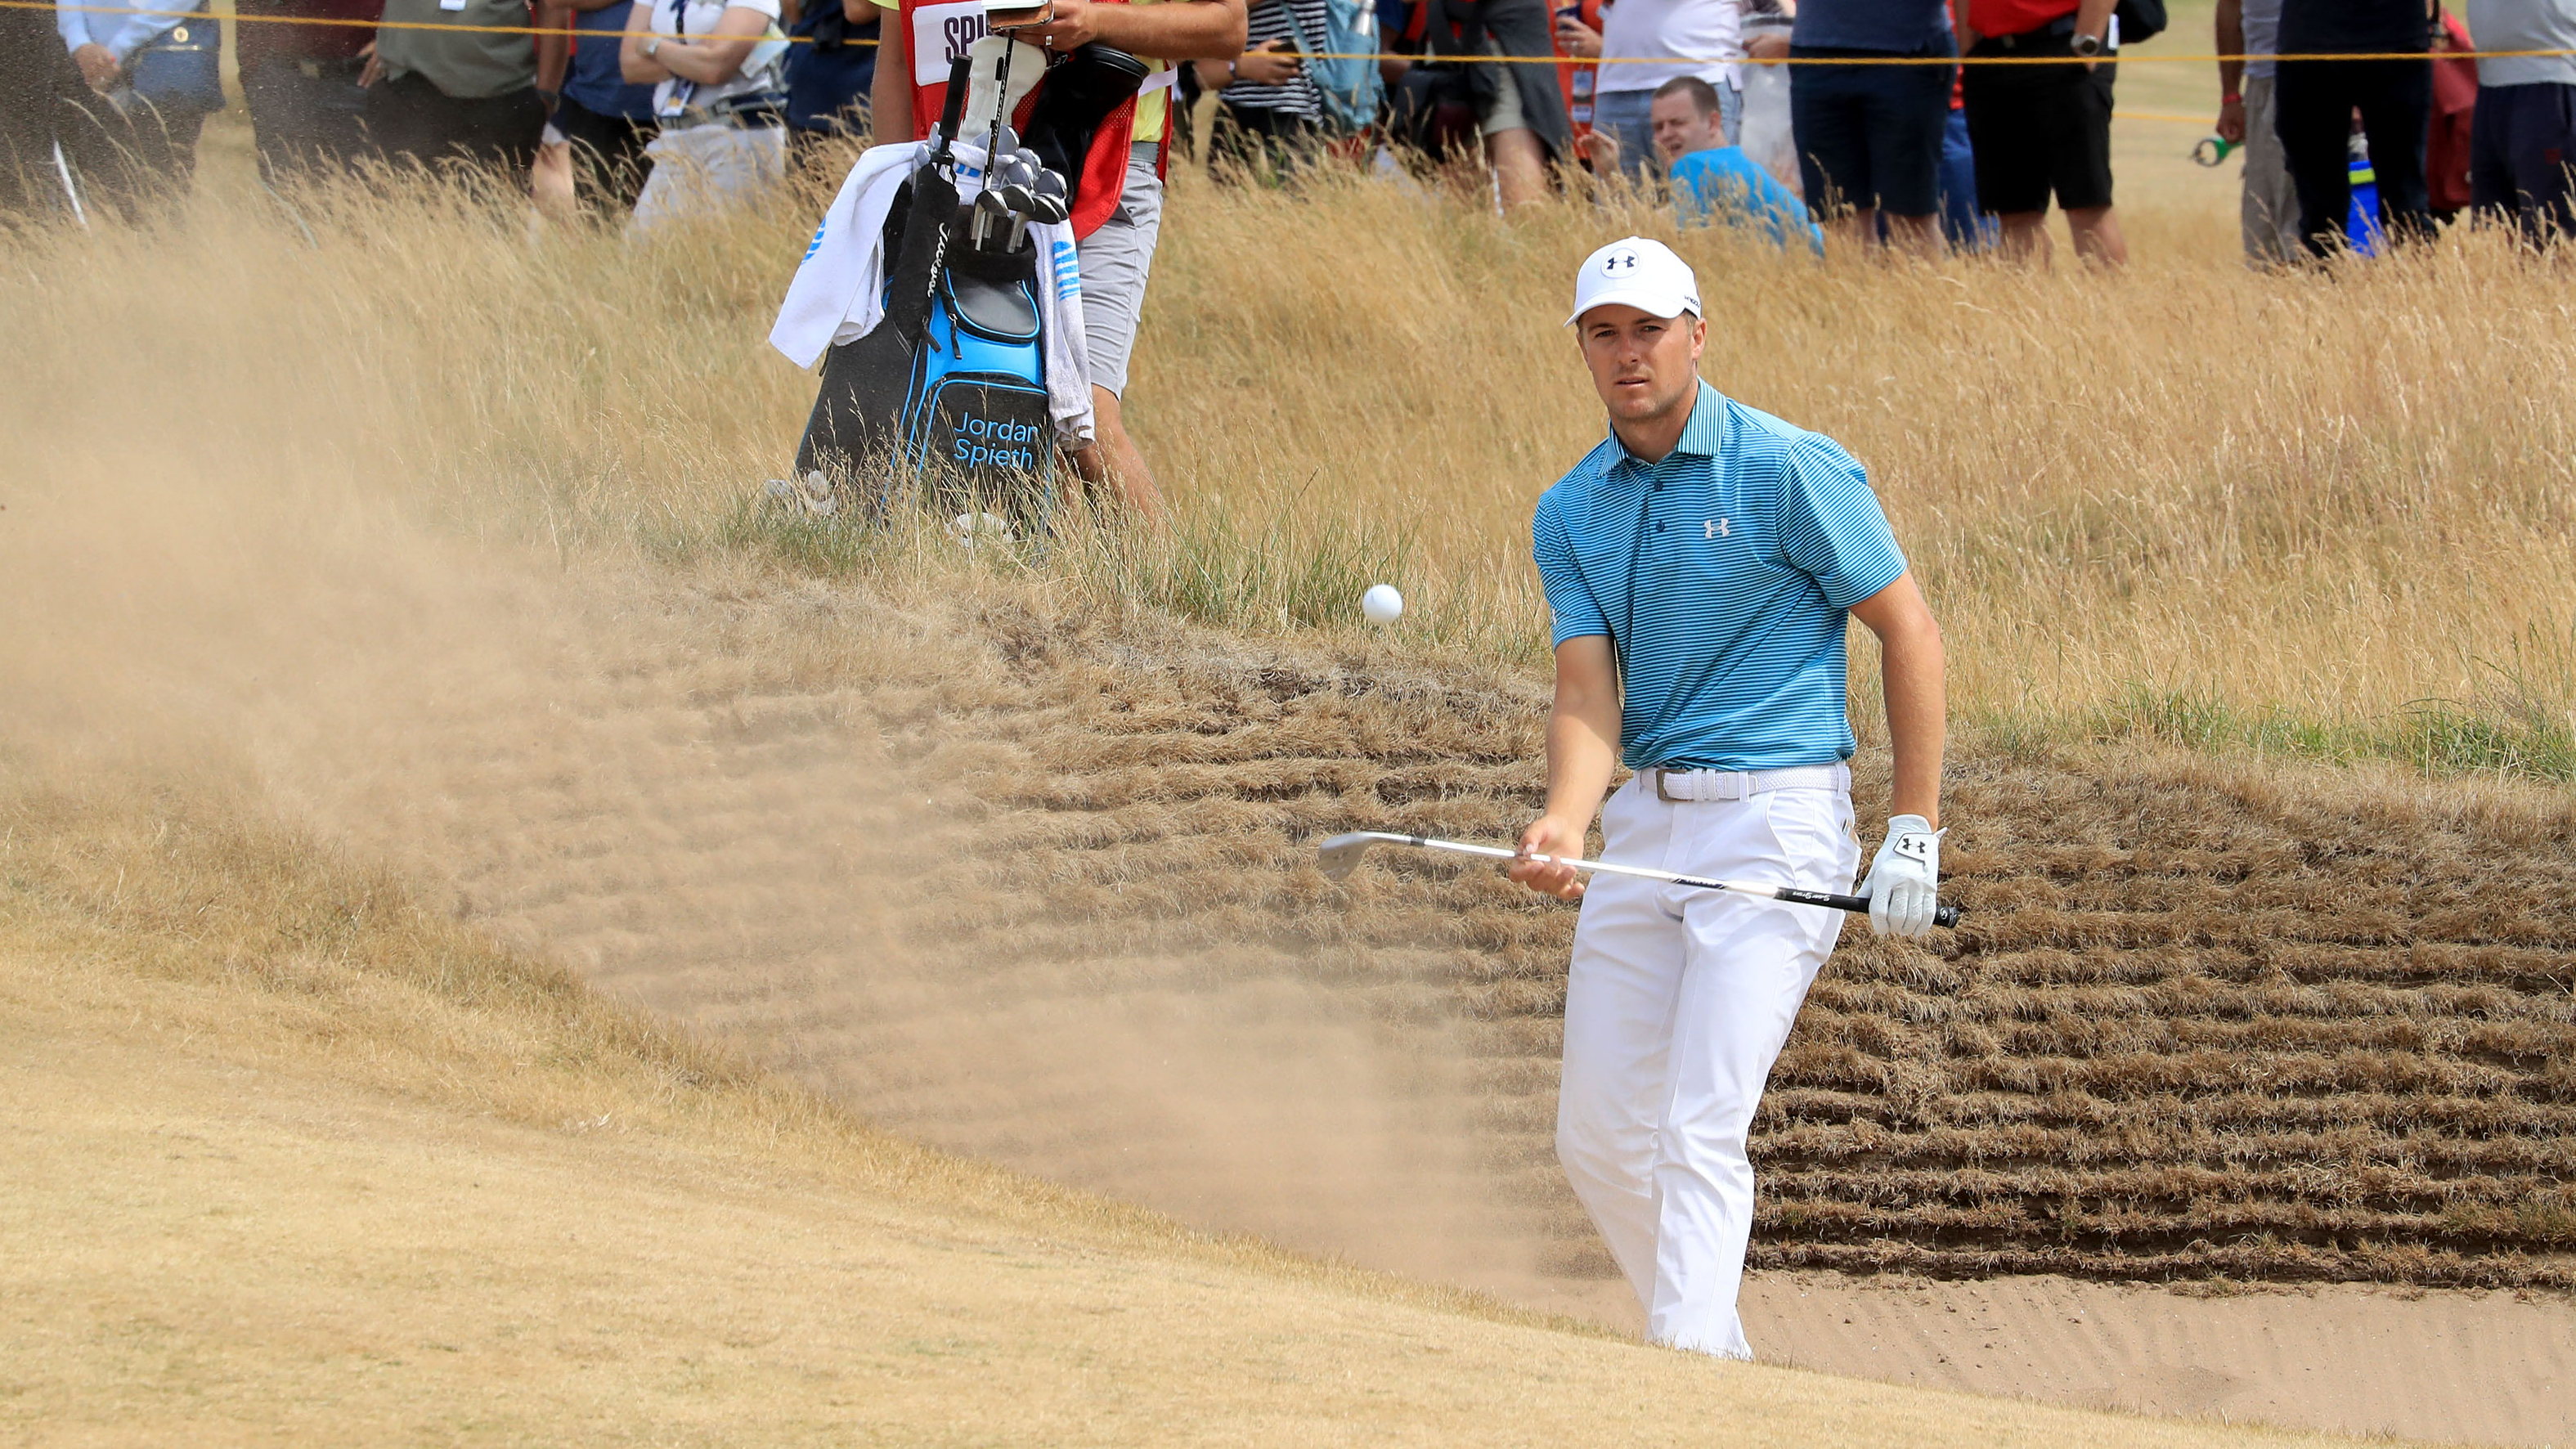 Jordan Spieth british open thursday carnoustie